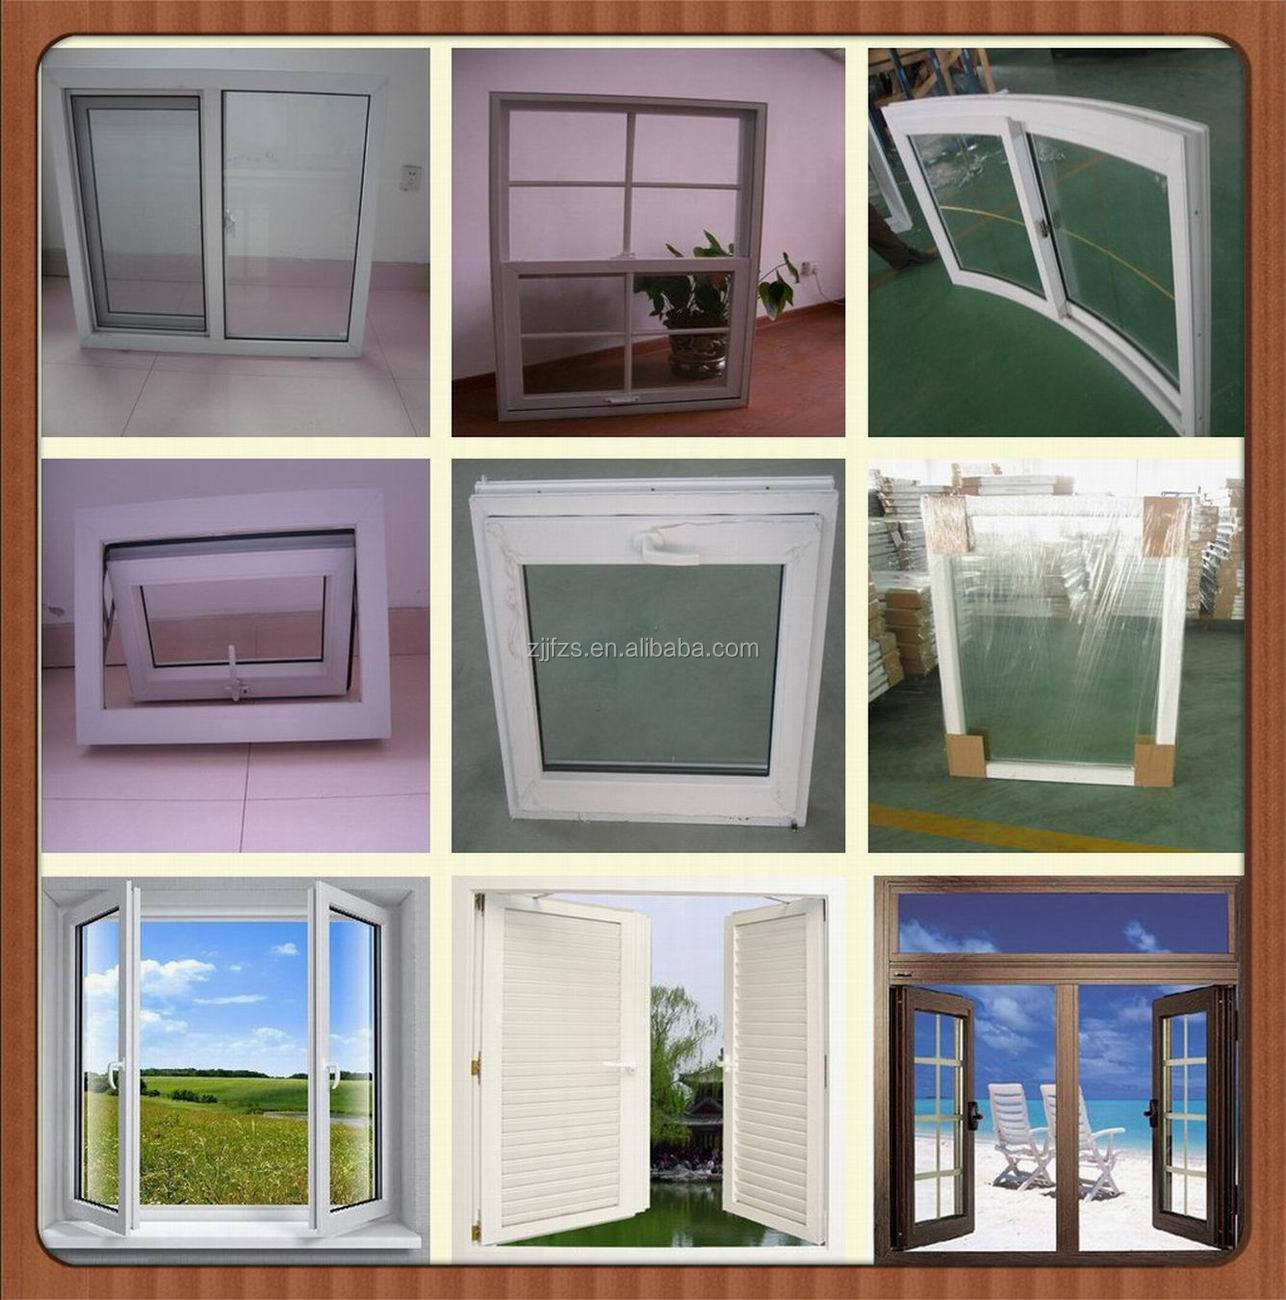 Pvc Outward Top Suspension Window Doors With Windows That